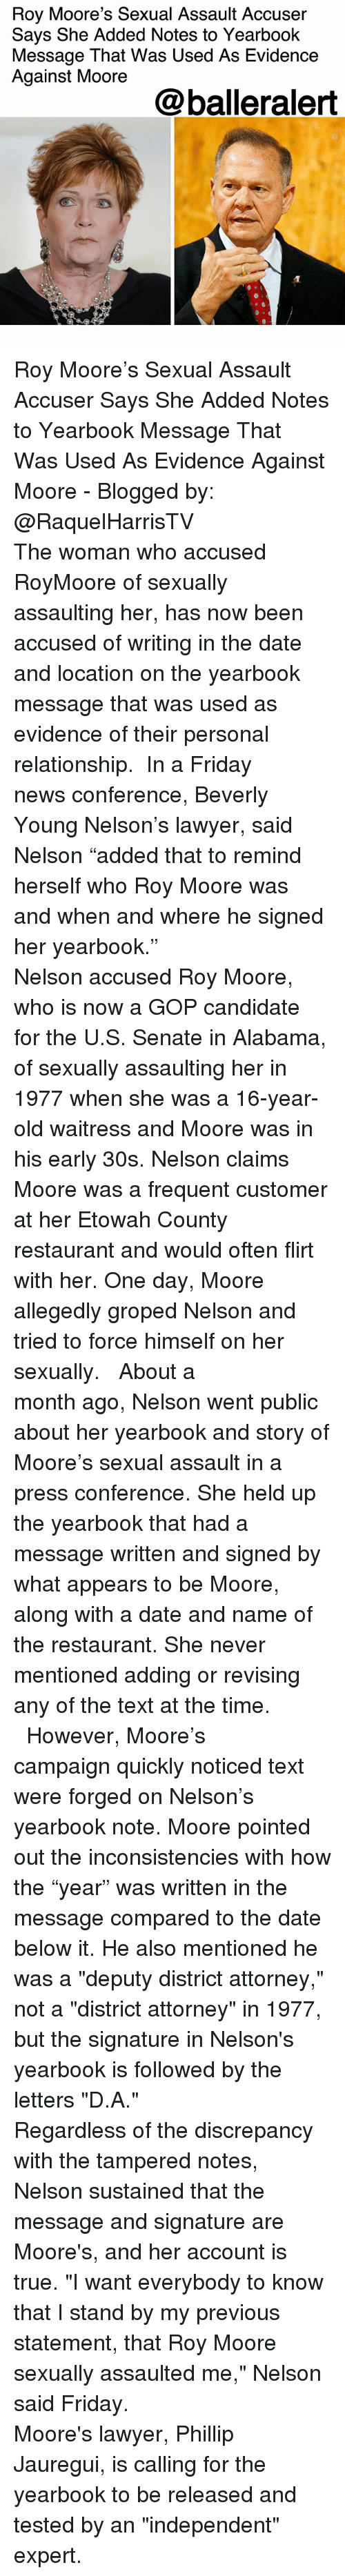 "Friday, Lawyer, and Memes: Roy Moore's Sexual Assault Accuser  Says She Added Notes to Yearbook  Message That Was Used As Evidence  Against Moore  @balleralert Roy Moore's Sexual Assault Accuser Says She Added Notes to Yearbook Message That Was Used As Evidence Against Moore - Blogged by: @RaquelHarrisTV ⠀⠀⠀⠀⠀⠀⠀⠀⠀ ⠀⠀⠀⠀⠀⠀⠀⠀⠀ The woman who accused RoyMoore of sexually assaulting her, has now been accused of writing in the date and location on the yearbook message that was used as evidence of their personal relationship. ⠀⠀⠀⠀⠀⠀⠀⠀⠀ In a Friday news conference, Beverly Young Nelson's lawyer, said Nelson ""added that to remind herself who Roy Moore was and when and where he signed her yearbook."" ⠀⠀⠀⠀⠀⠀⠀⠀⠀ ⠀⠀⠀⠀⠀⠀⠀⠀⠀ Nelson accused Roy Moore, who is now a GOP candidate for the U.S. Senate in Alabama, of sexually assaulting her in 1977 when she was a 16-year-old waitress and Moore was in his early 30s. Nelson claims Moore was a frequent customer at her Etowah County restaurant and would often flirt with her. One day, Moore allegedly groped Nelson and tried to force himself on her sexually. ⠀⠀⠀⠀⠀⠀⠀⠀⠀ ⠀⠀⠀⠀⠀⠀⠀⠀⠀ About a month ago, Nelson went public about her yearbook and story of Moore's sexual assault in a press conference. She held up the yearbook that had a message written and signed by what appears to be Moore, along with a date and name of the restaurant. She never mentioned adding or revising any of the text at the time. ⠀⠀⠀⠀⠀⠀⠀⠀⠀ ⠀⠀⠀⠀⠀⠀⠀⠀⠀ However, Moore's campaign quickly noticed text were forged on Nelson's yearbook note. Moore pointed out the inconsistencies with how the ""year"" was written in the message compared to the date below it. He also mentioned he was a ""deputy district attorney,"" not a ""district attorney"" in 1977, but the signature in Nelson's yearbook is followed by the letters ""D.A."" ⠀⠀⠀⠀⠀⠀⠀⠀⠀ ⠀⠀⠀⠀⠀⠀⠀⠀⠀ Regardless of the discrepancy with the tampered notes, Nelson sustained that the message and signature are Moore's, and her account is true. ""I want everybody to know that I stand by my previous statement, that Roy Moore sexually assaulted me,"" Nelson said Friday. ⠀⠀⠀⠀⠀⠀⠀⠀⠀ ⠀⠀⠀⠀⠀⠀⠀⠀⠀ Moore's lawyer, Phillip Jauregui, is calling for the yearbook to be released and tested by an ""independent"" expert."